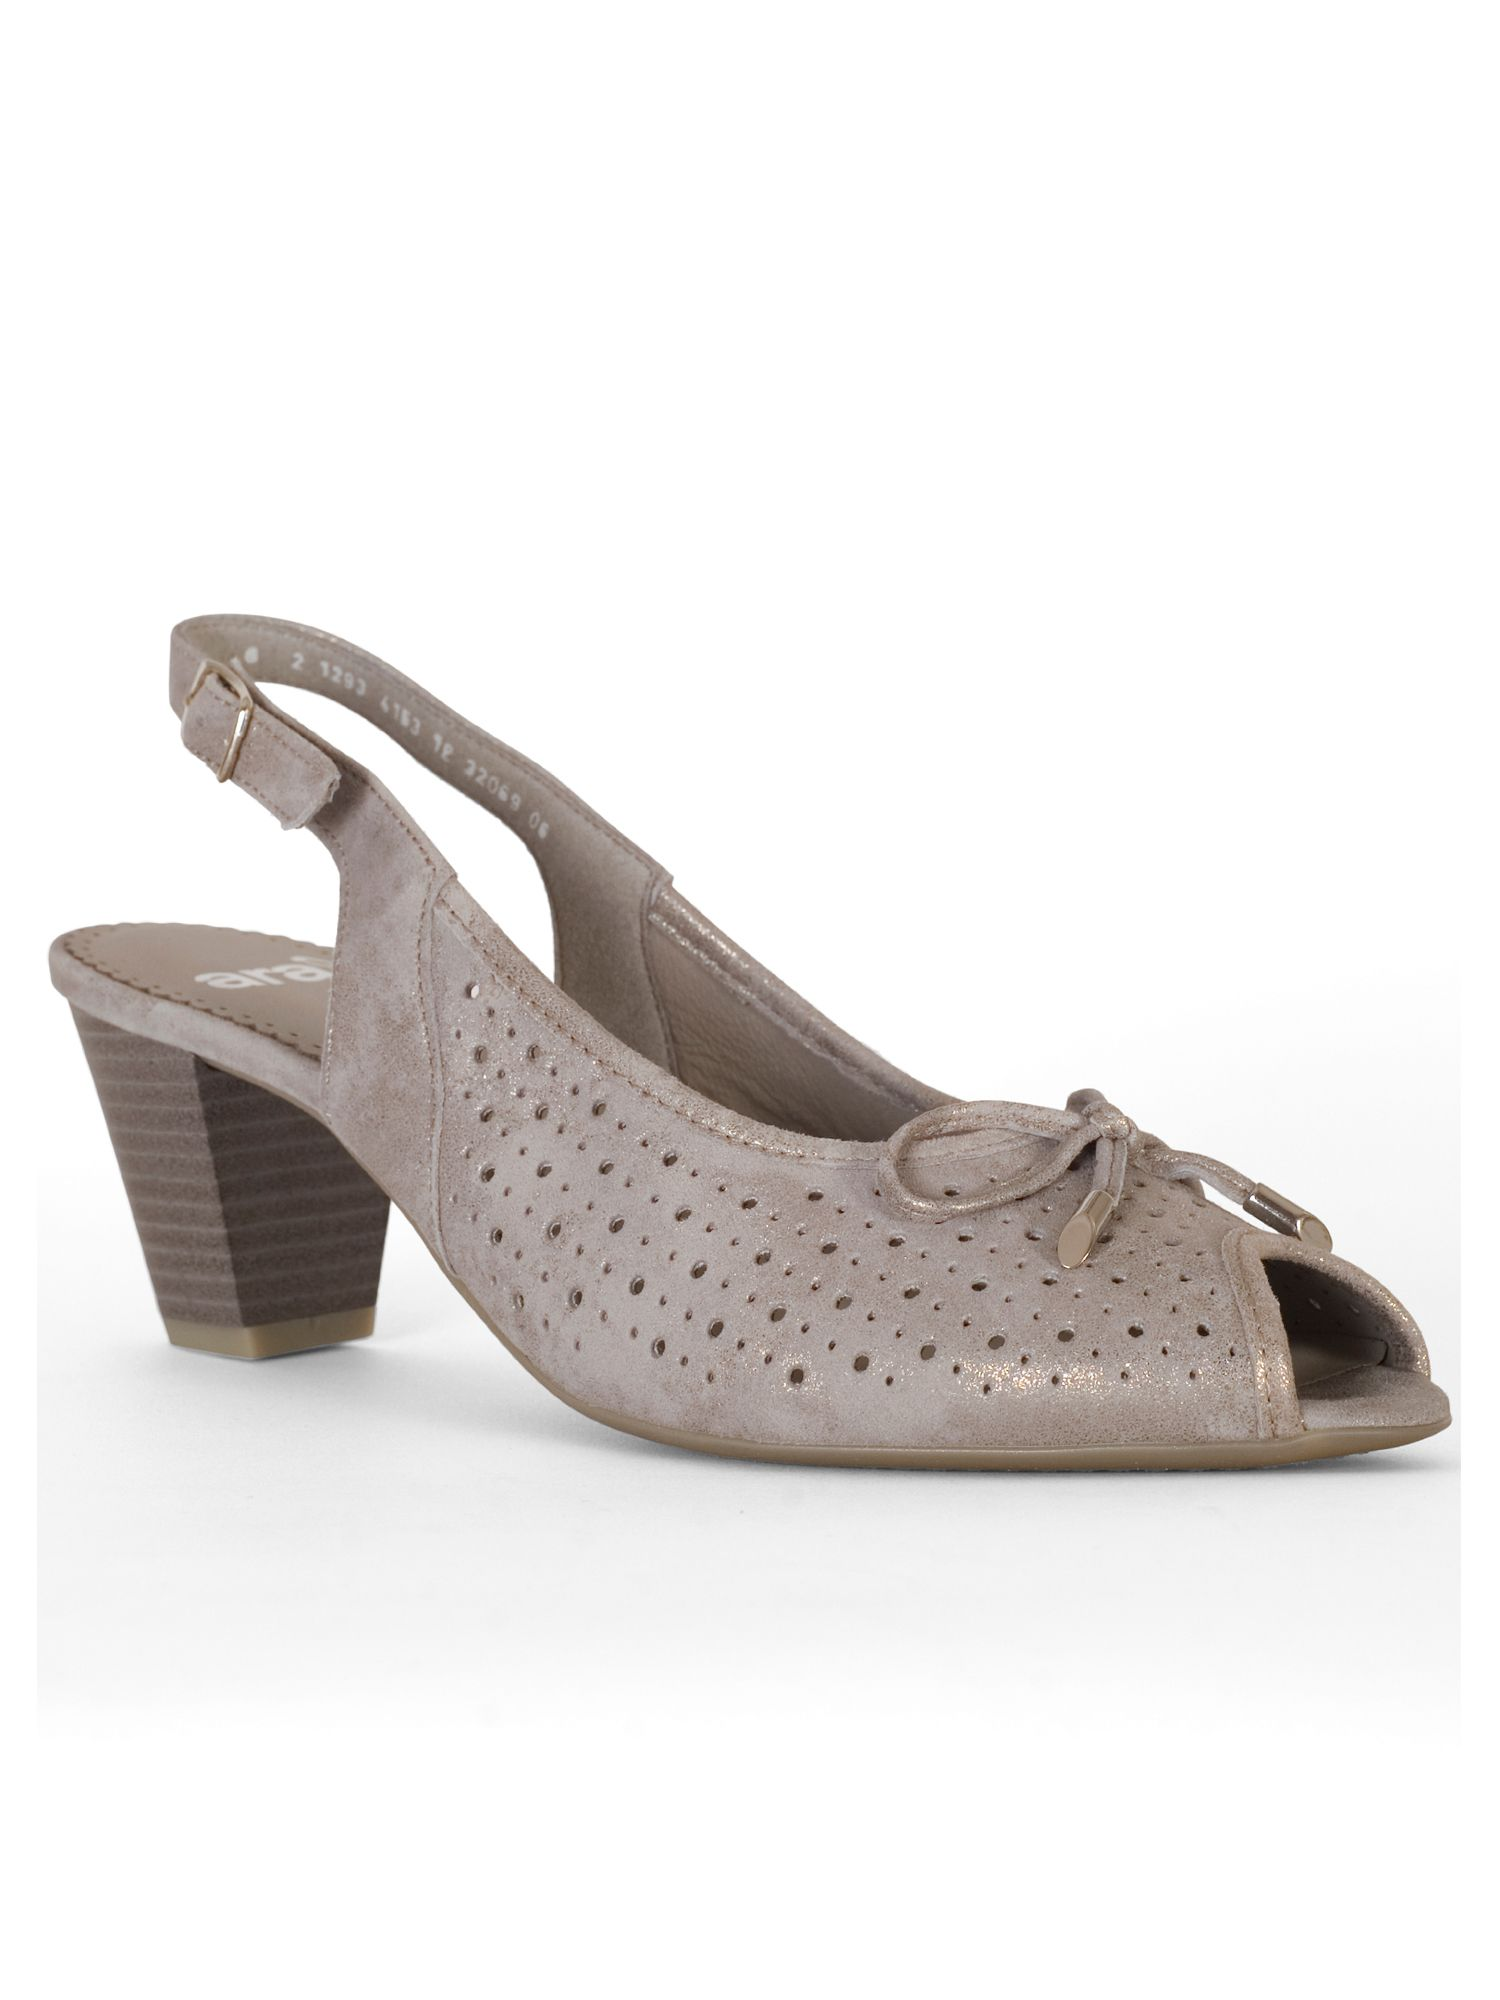 Chesca Perforated Peep Toe H Fit Nubuck Shoe, Grey